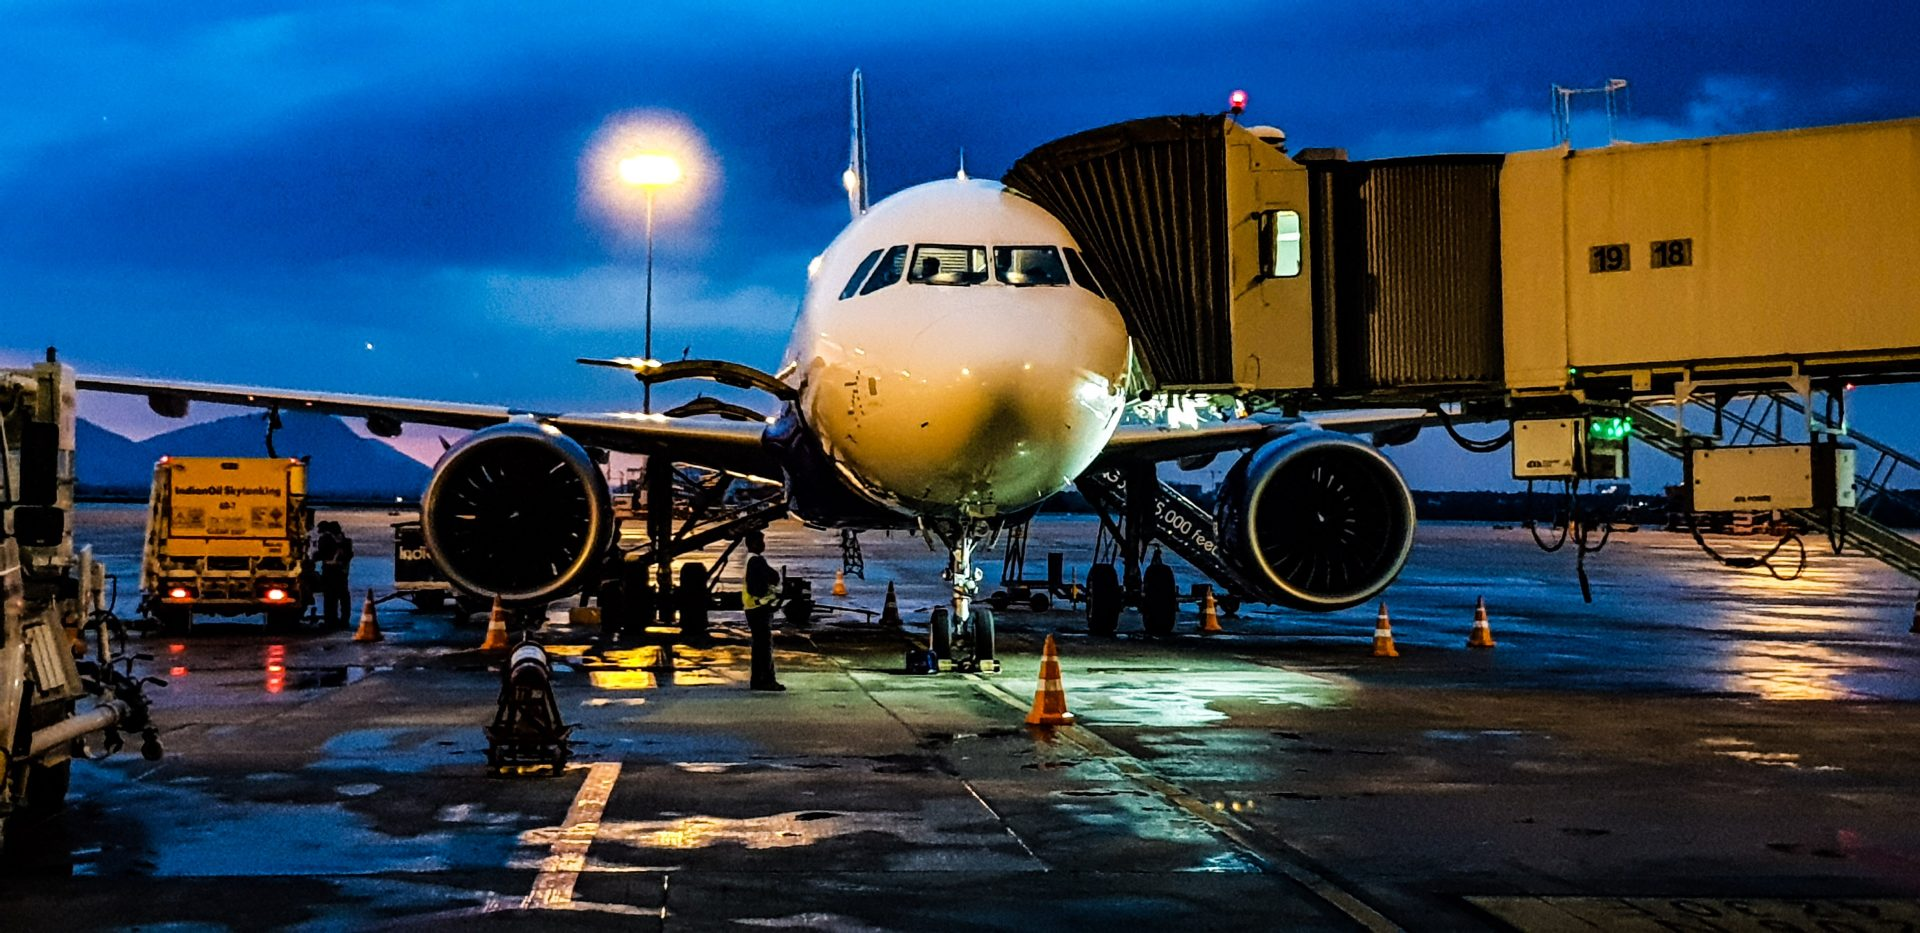 Delayed aircraft parked at gate against darkening sky background.